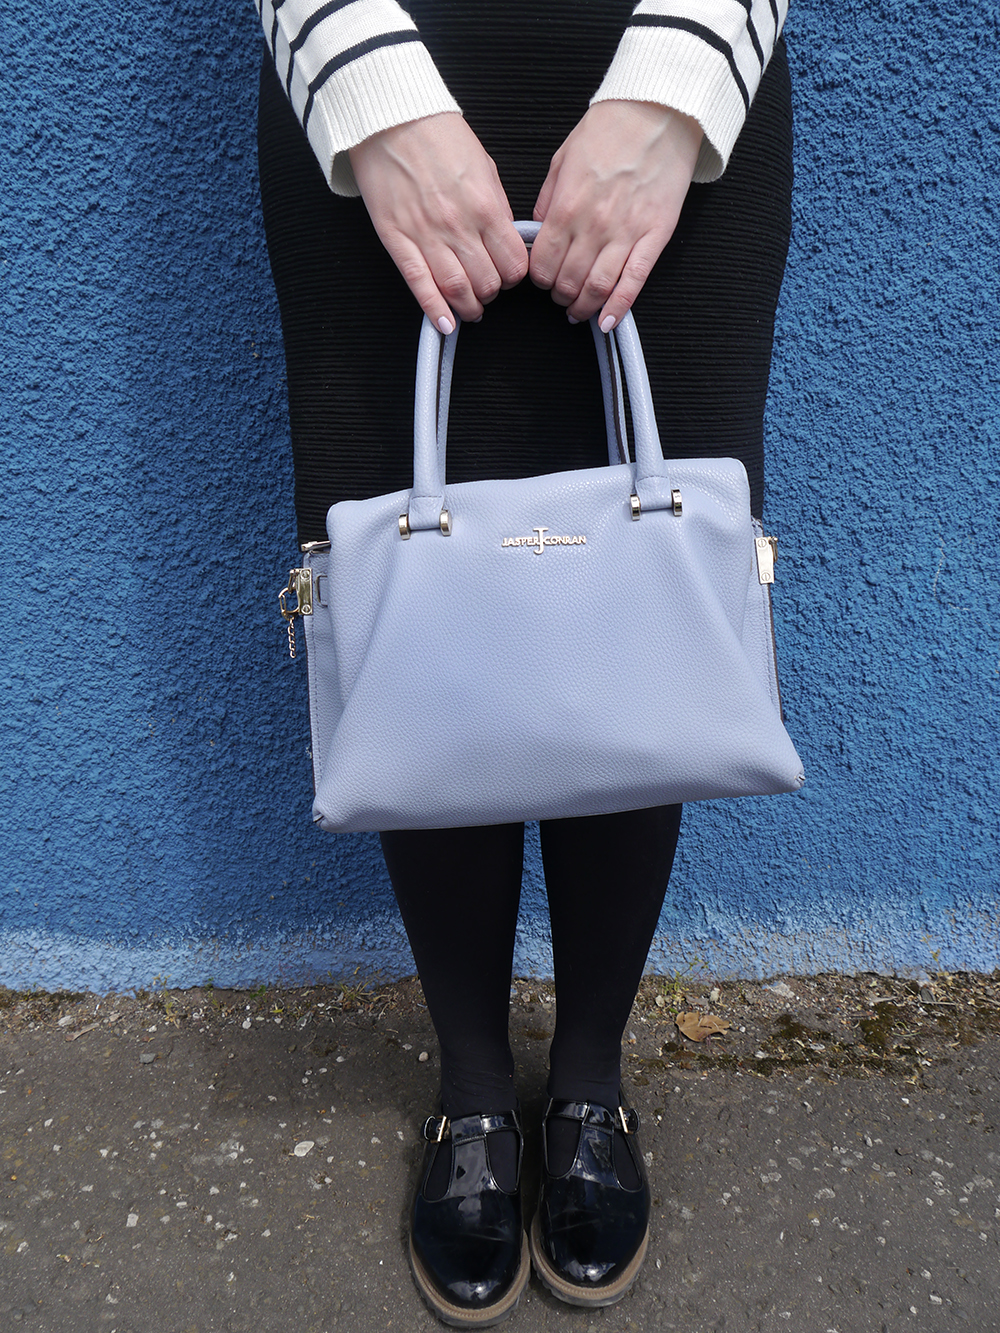 Scottish fashion blogger, Wardrobe Conversations, Jasper Conran bag from Debenhams, blue background, monochrome outfit inspiration, blue and monochrome streetstyle, Debenhams designers as worn by blogger